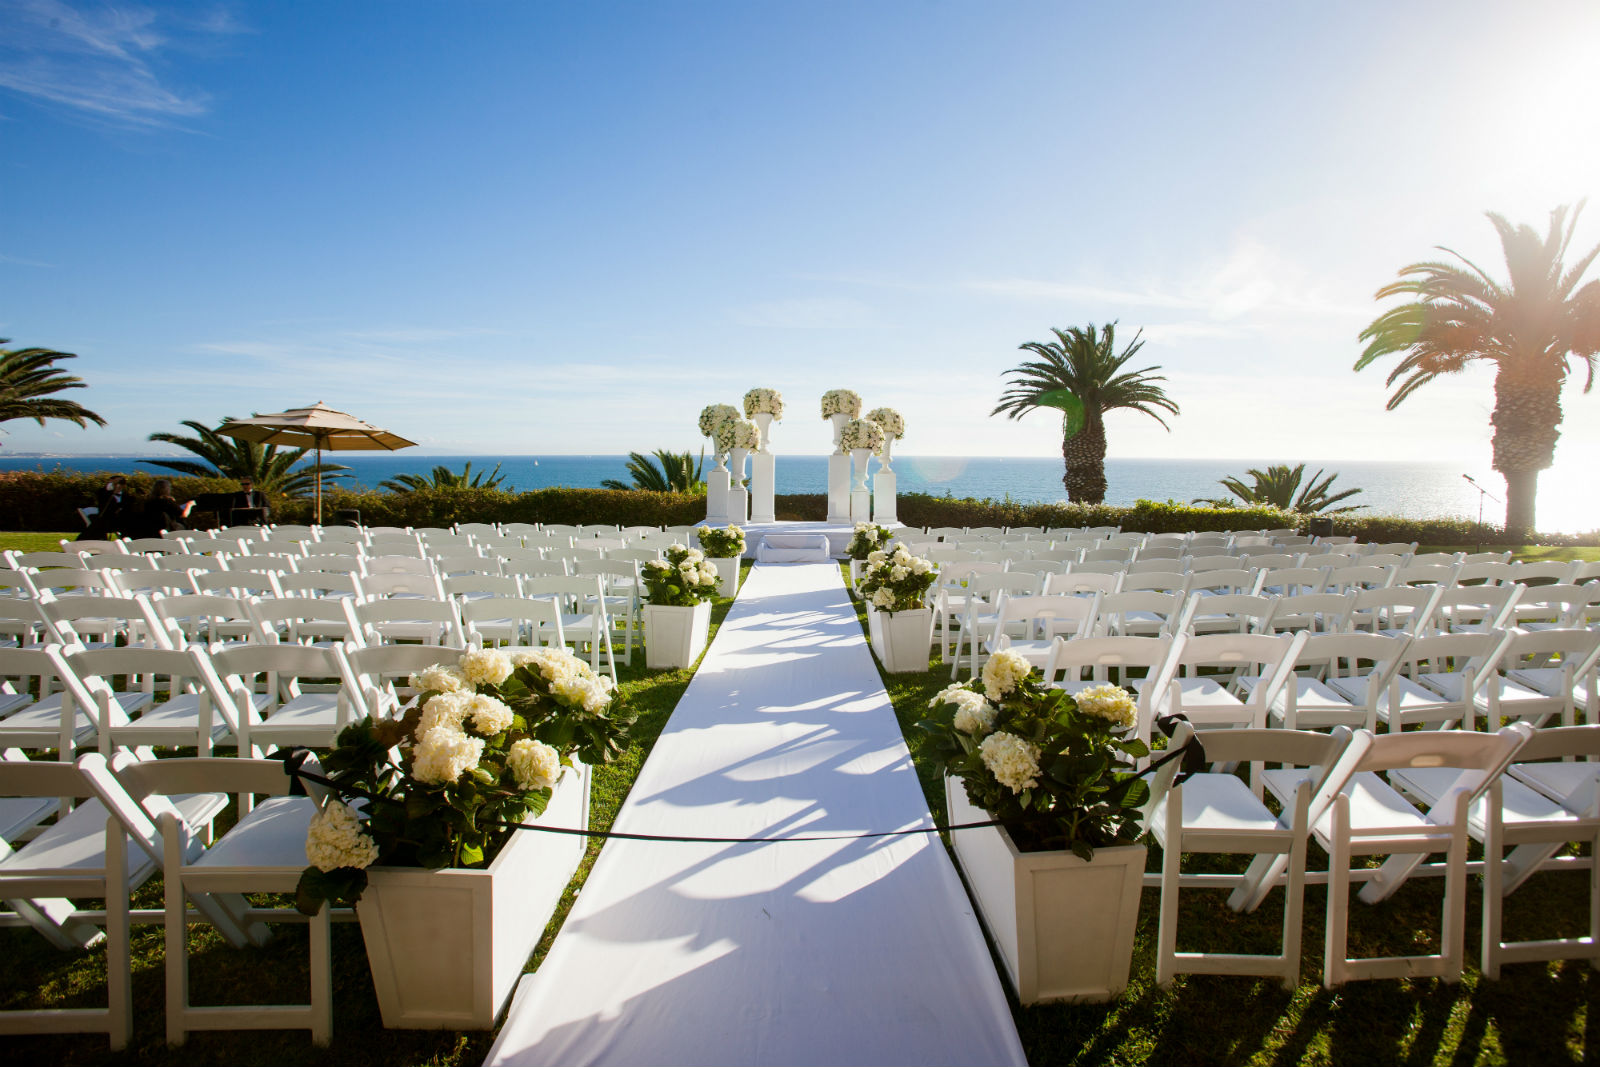 Weddings at Bel-Air Bay Club